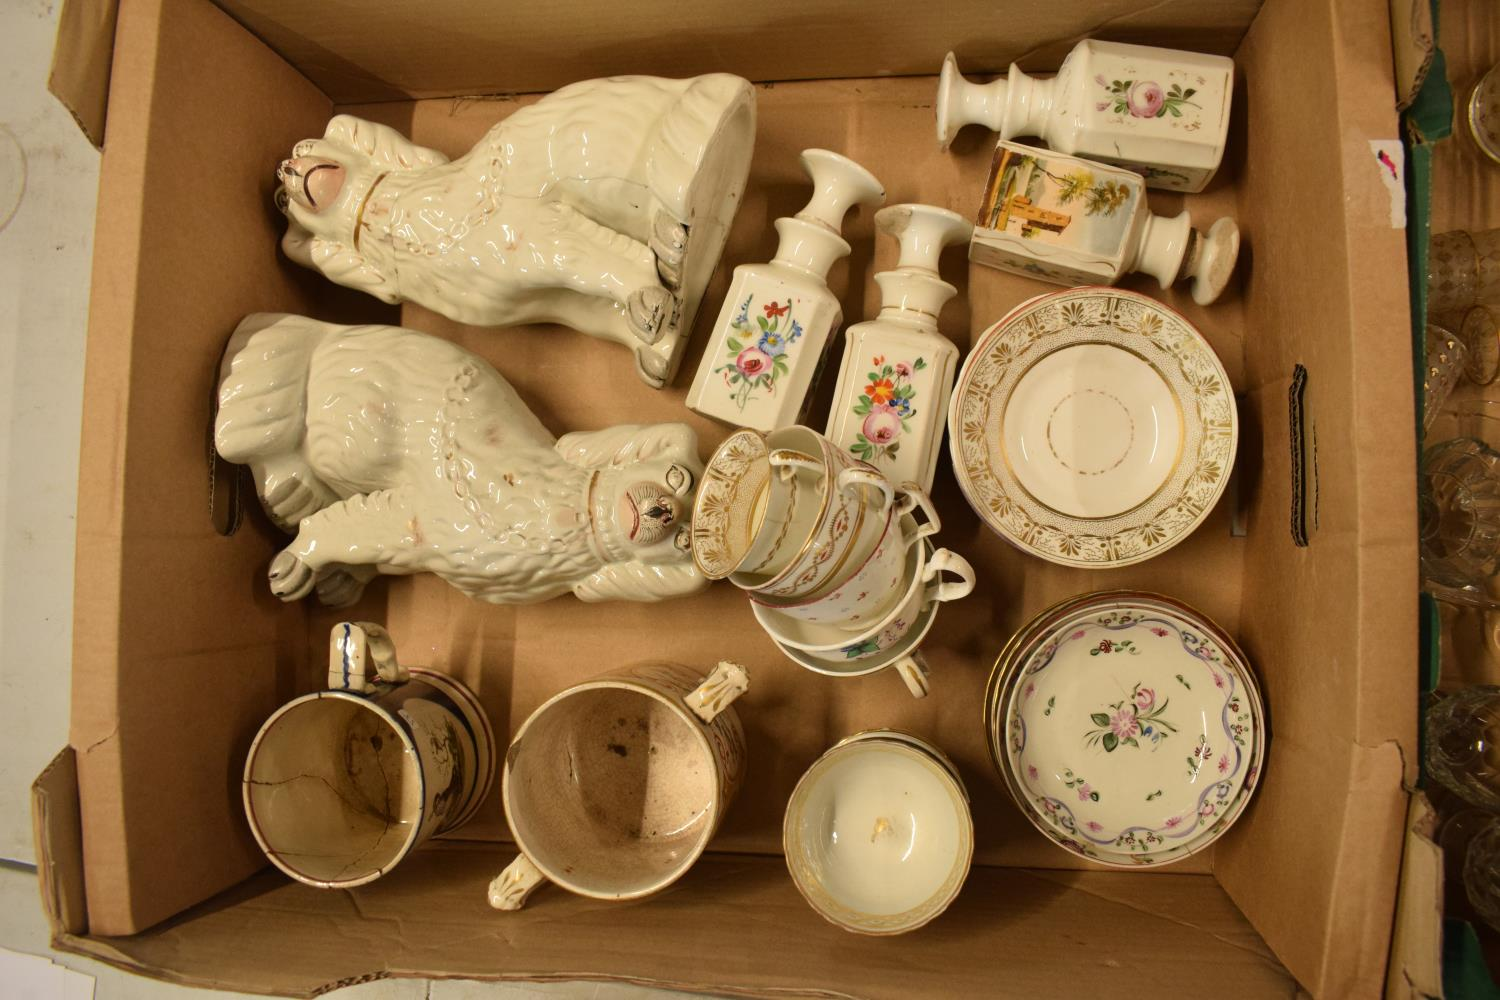 A collection of 19th century pottery to include Staffordshire dogs, tankards, opaque bottles etc. No